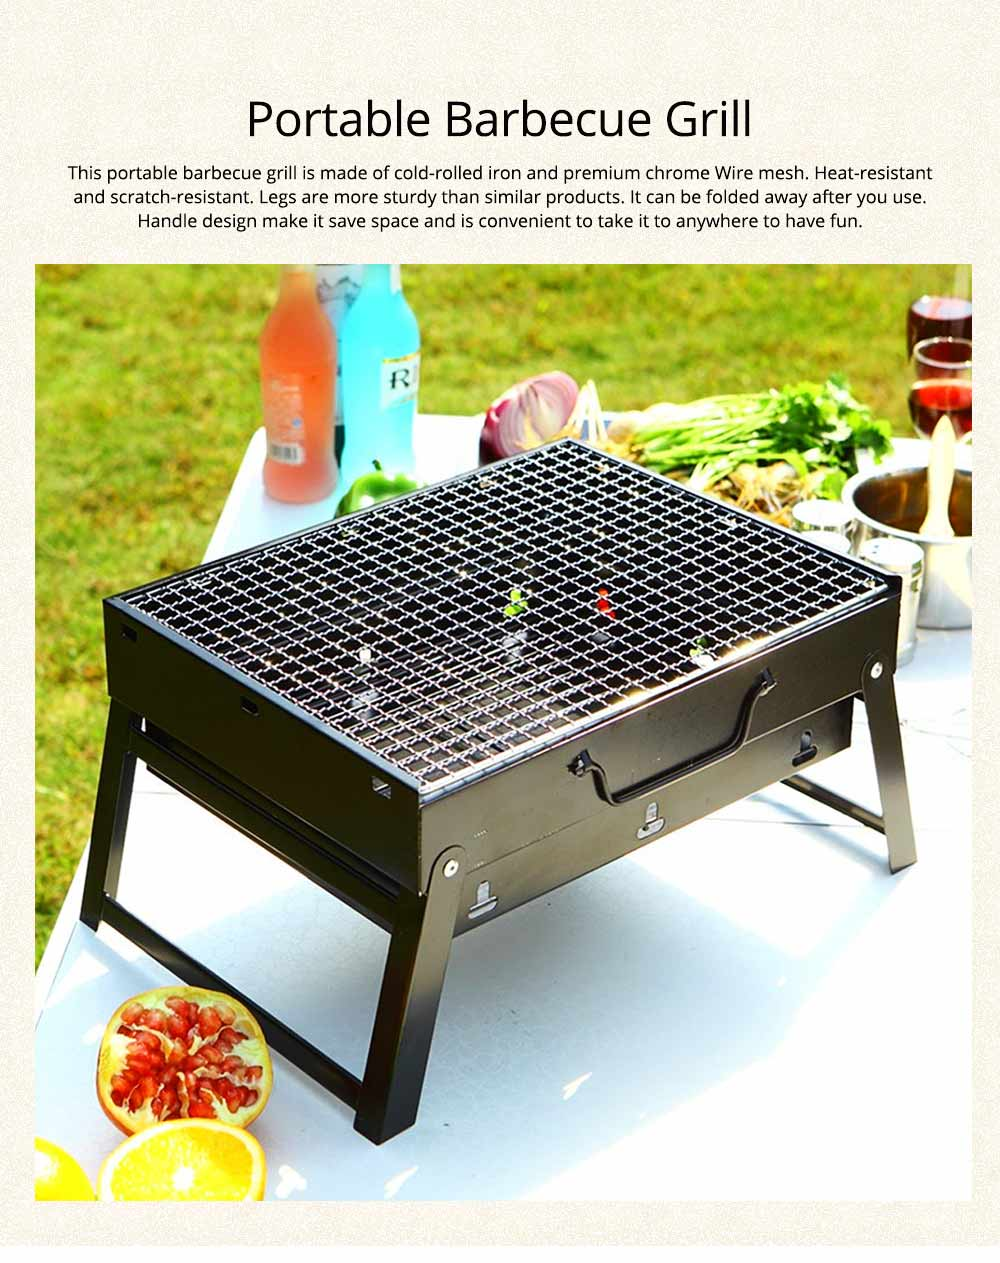 Portable Barbecue Grill Lightweight Charcoal Grill Foldable Premium BBQ Grill for Outdoor Camping Travel Park Beach Wild 0